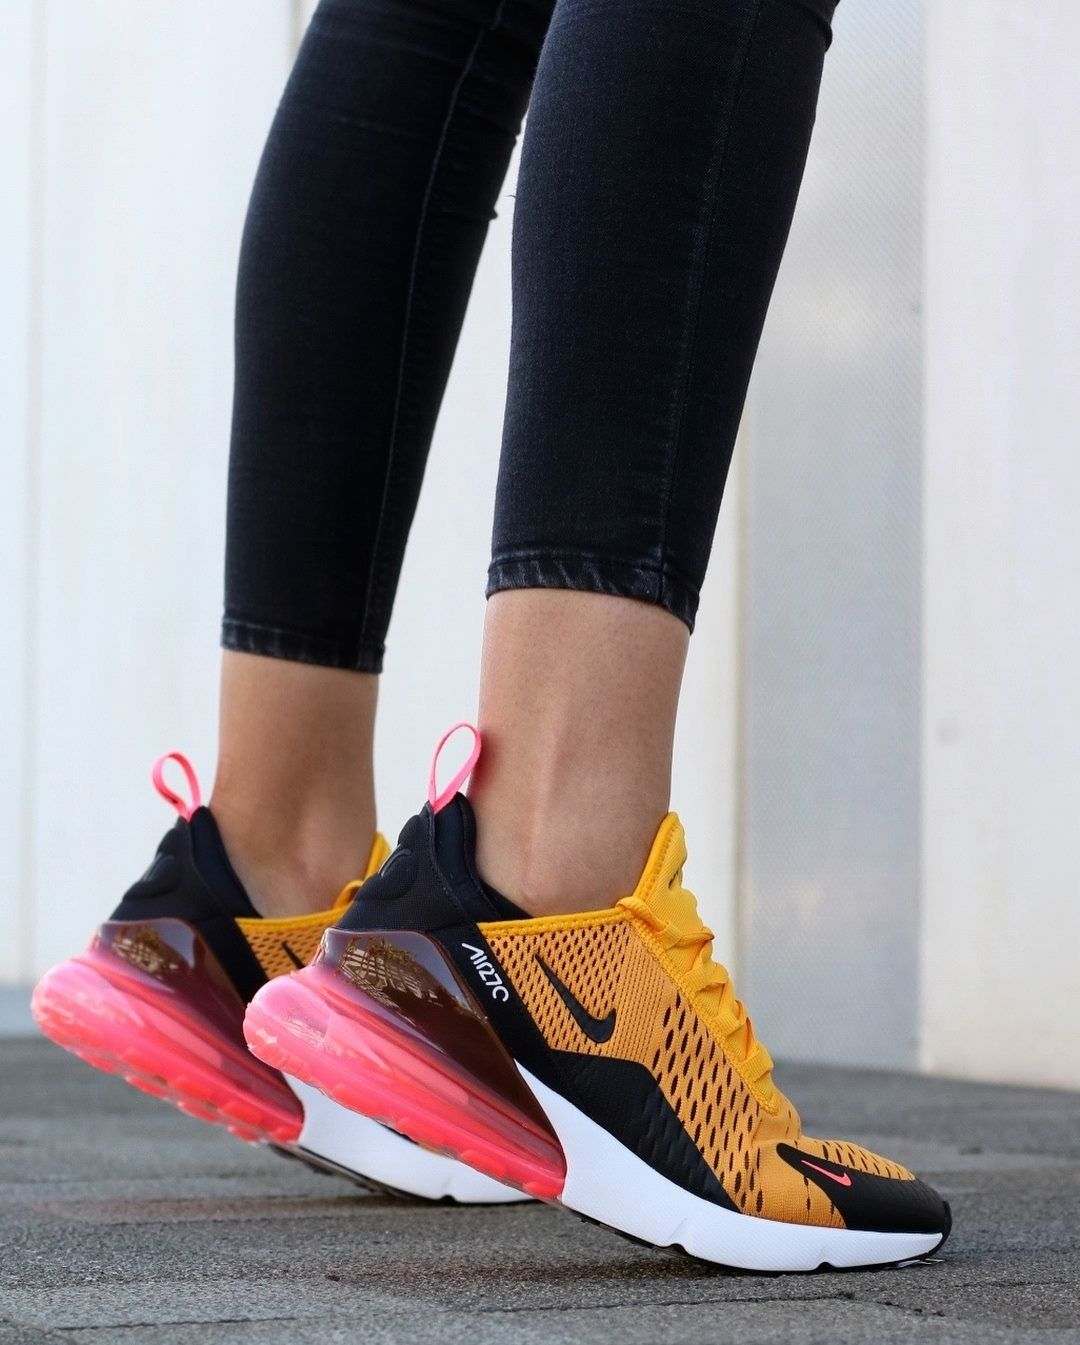 Nike Air Max 270 (With images) | Workout shoes, Sneakers